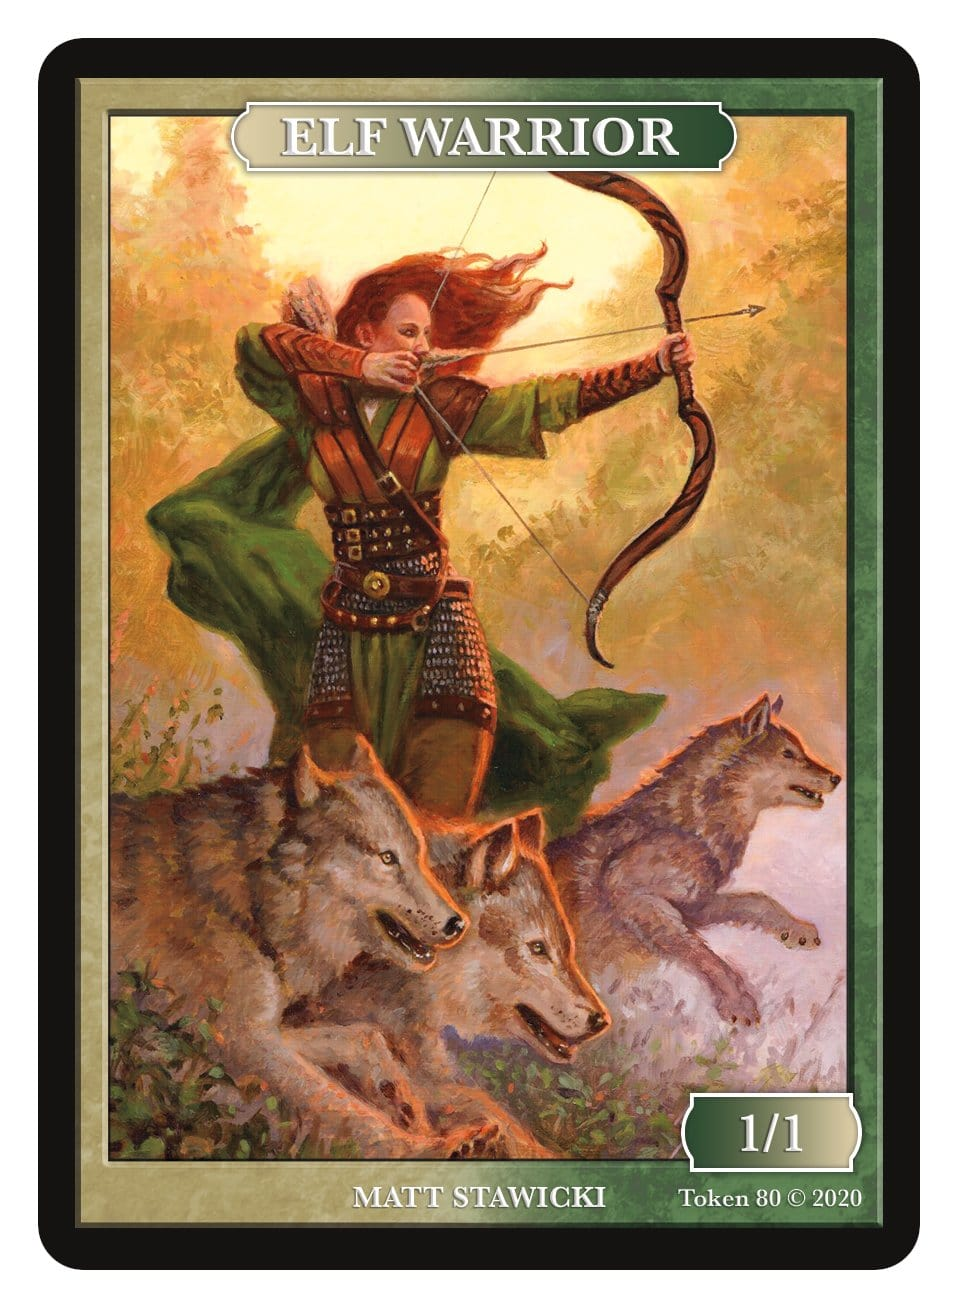 Elf Warrior Token (1/1) by Matt Stawicki